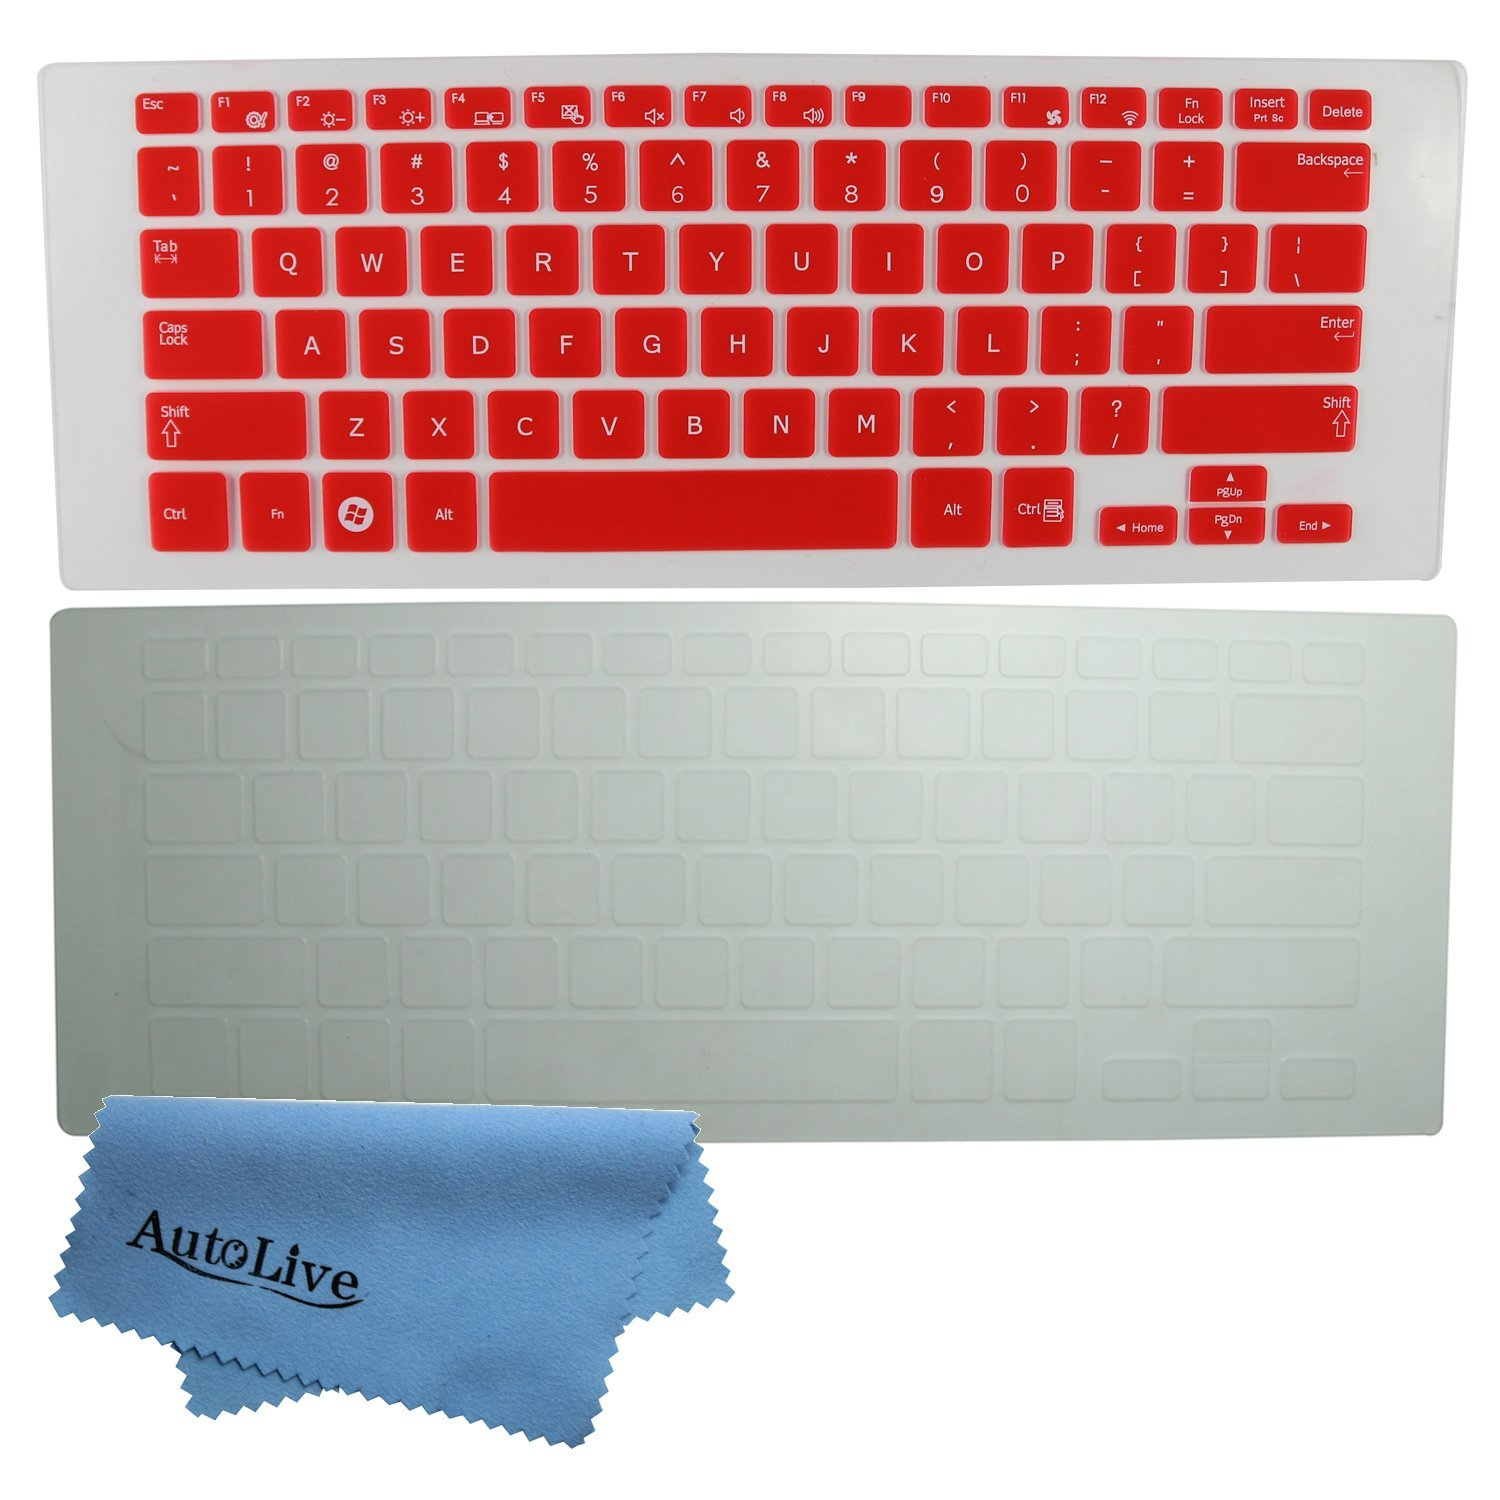 AutoLive 2-Pack Translucent Silicone Gel Keyboard Protector Cover Skin for 13.3-Inch Samsung ATIV Book 7/9 Lite NP905S3G NP915S3G NP740U3E series, such as NP905S3G-K01IL, NP905S3G-K02US, NP905S3G-K02UK, NP915S3G-K01US, NP915S3G-K02US, NP915S3G-K04US, NP915S3G-K05US, NP740U3E-K01US, NP740U3E-A01UB